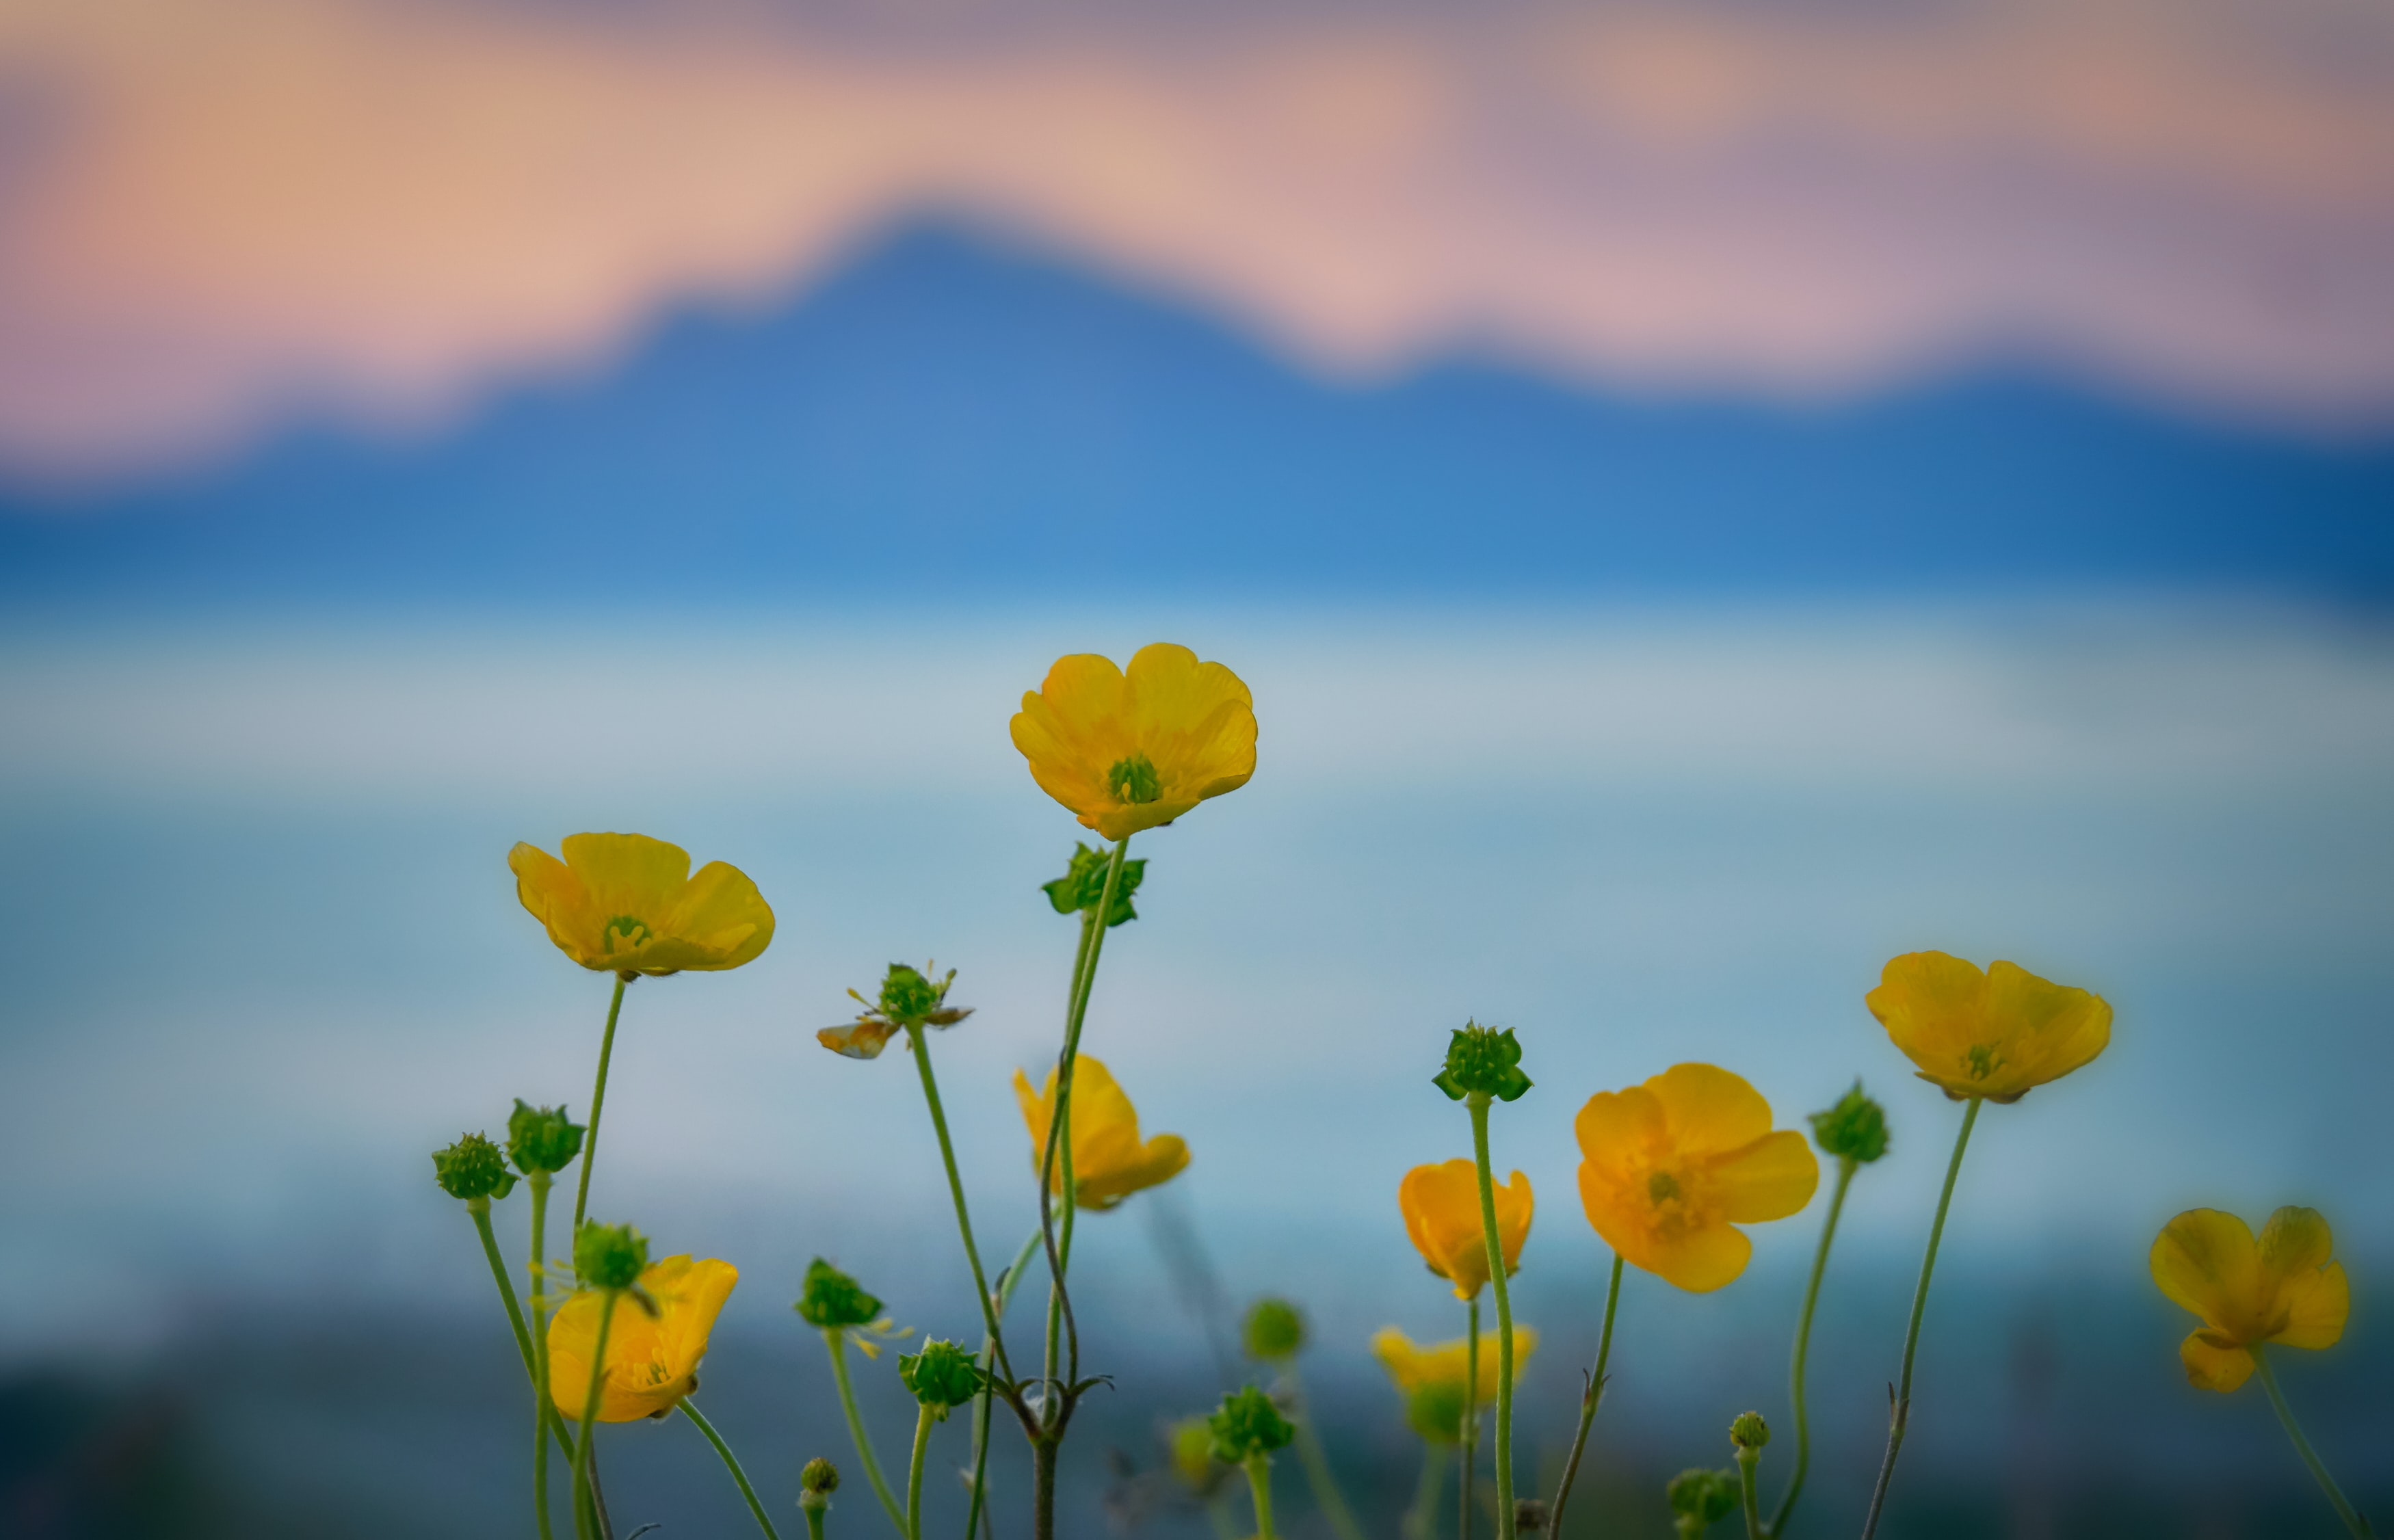 selective focus photography of buttercup flowers